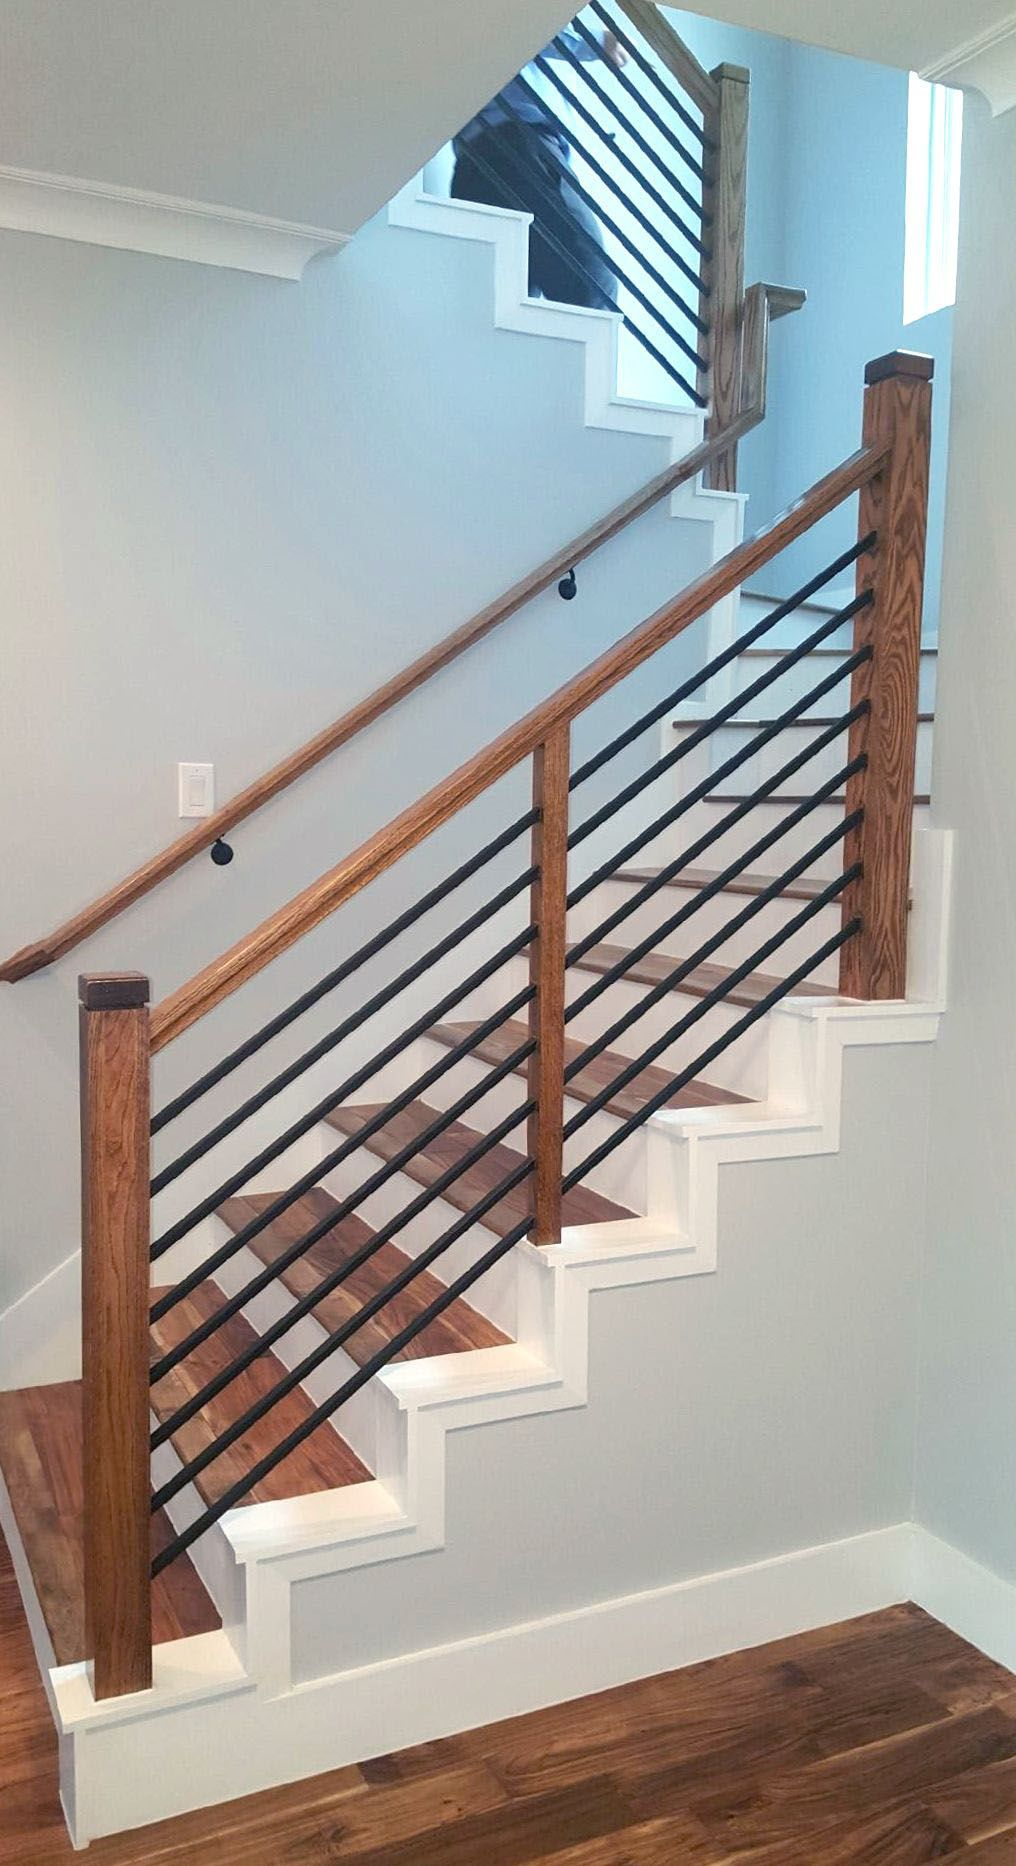 17 Must-See Staircase Railing Designs #staircaserailings